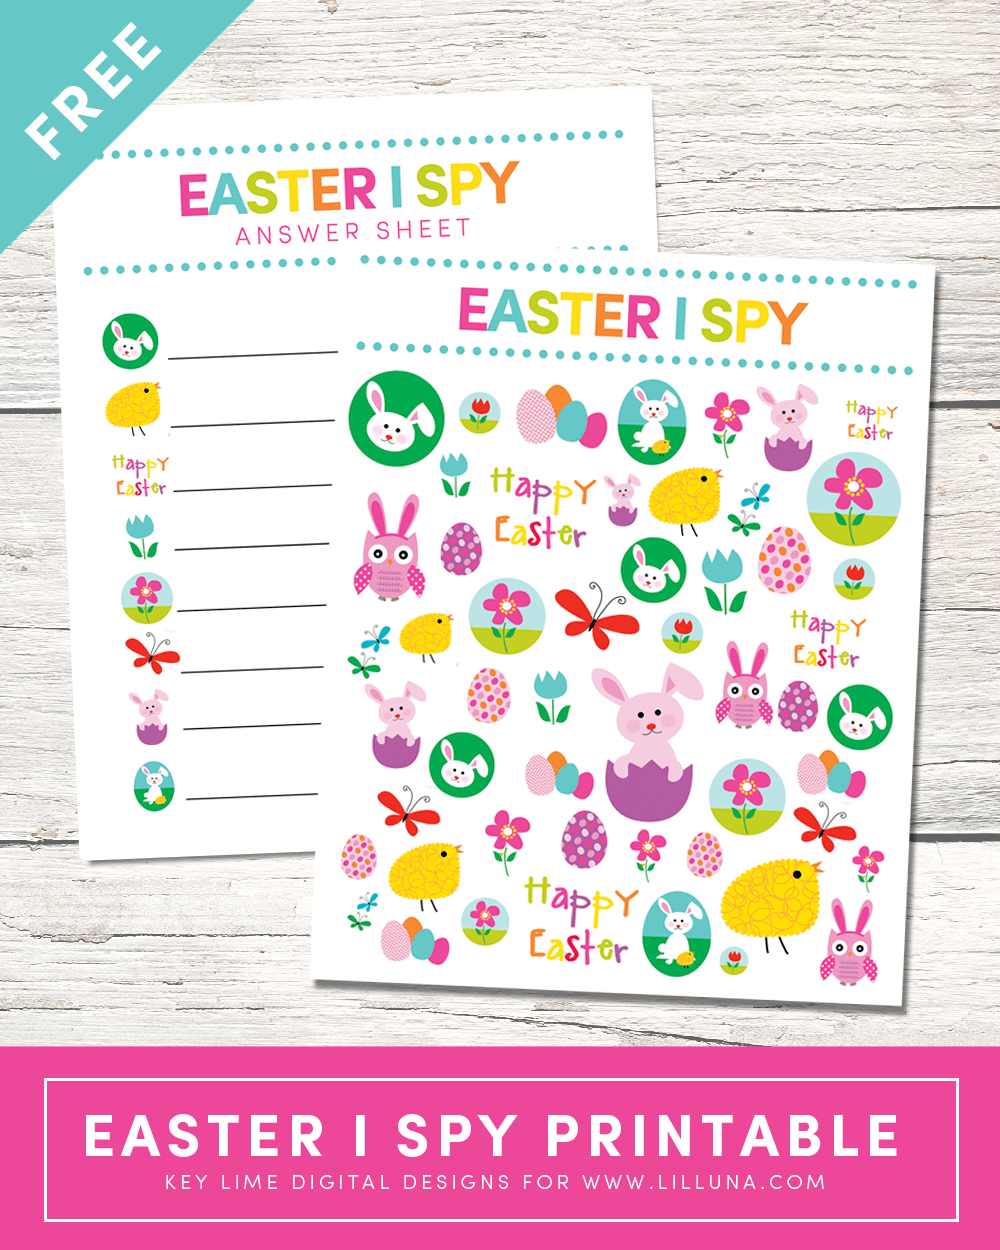 FREE Easter I Spy Printable - a super cute printable and game for the kids to play for Easter parties or even Easter Sunday!